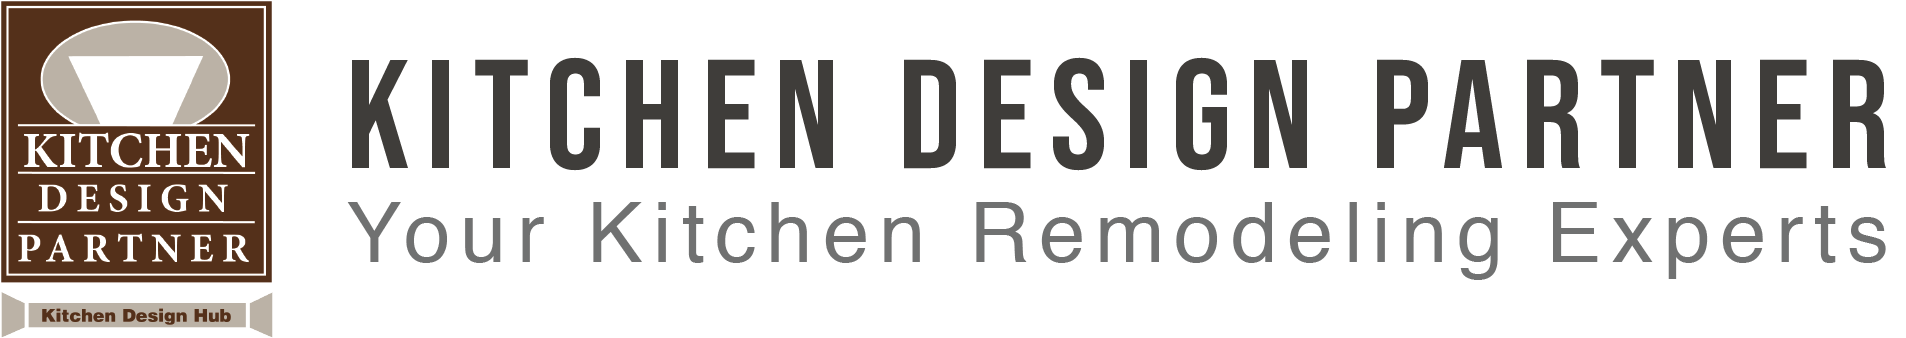 Kitchen Design Partner